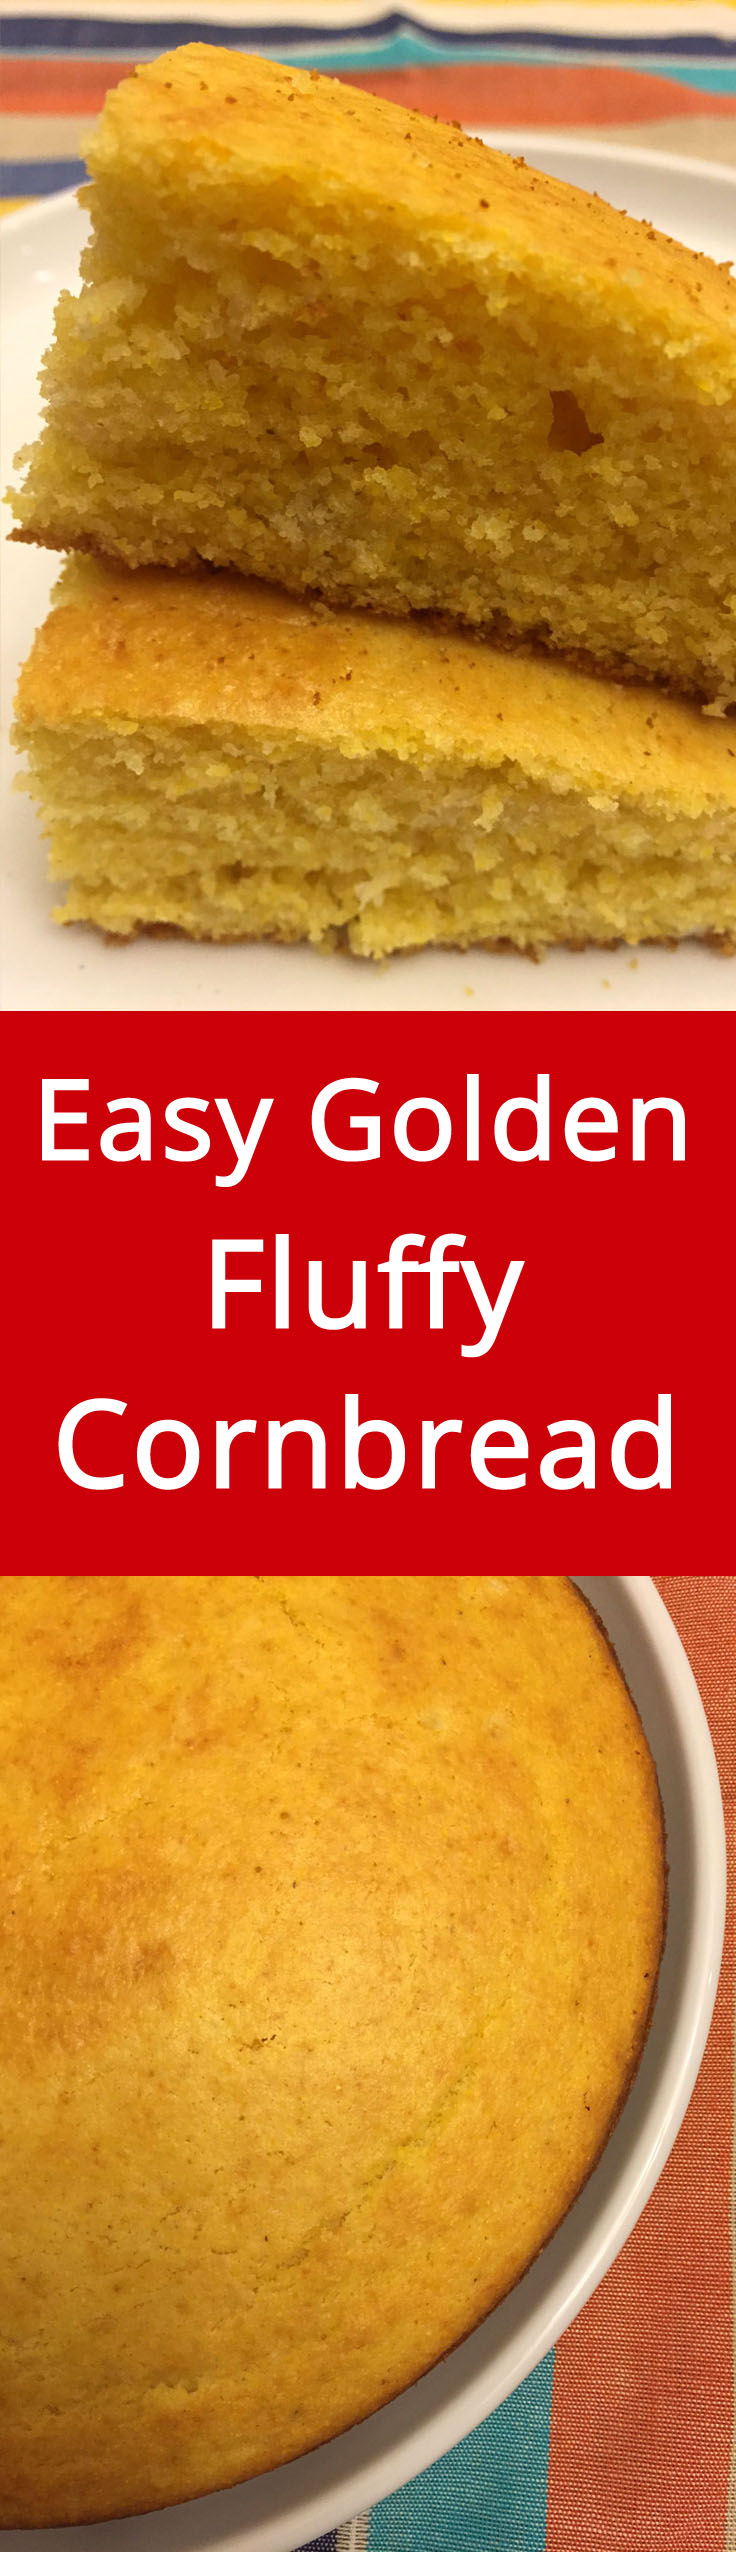 This easy cornbread recipe makes delicious fluffy cornbread that is ...